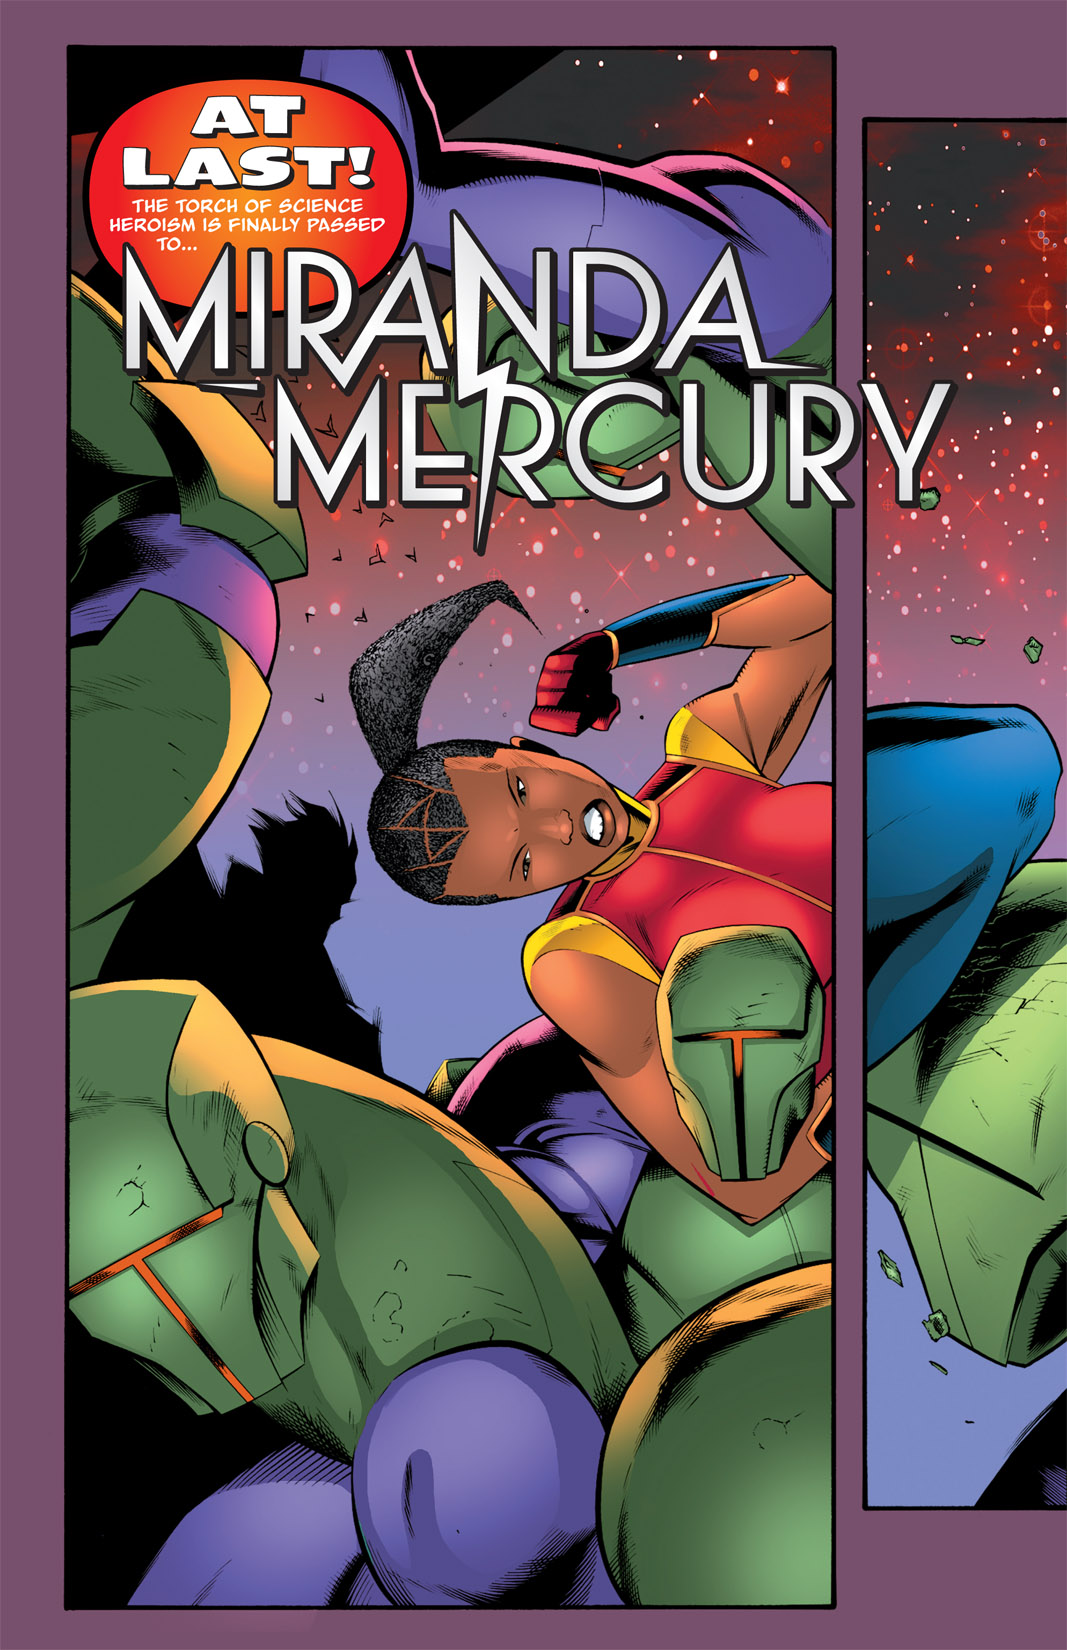 Read online The Many Adventures of Miranda Mercury: Time Runs Out comic -  Issue # TPB - 155